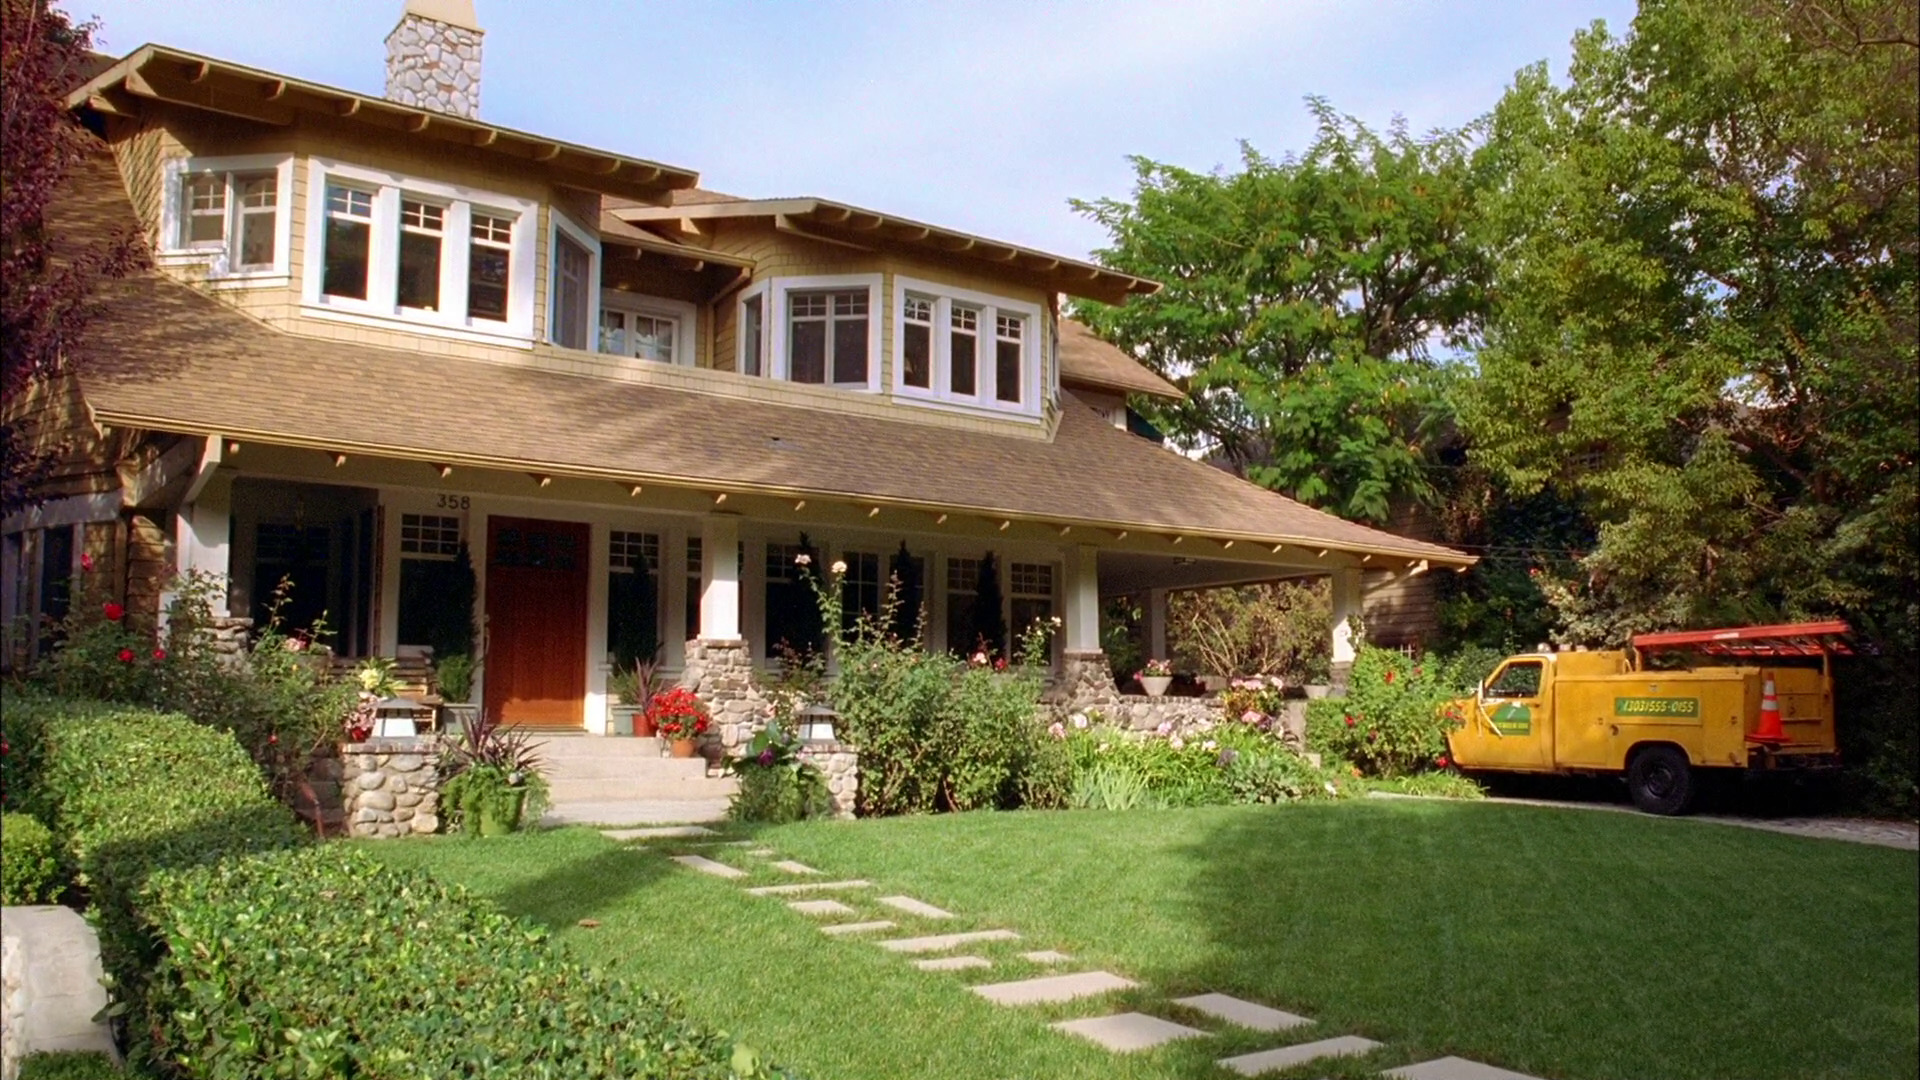 The duncan house good luck charlie wiki fandom powered for Good house images